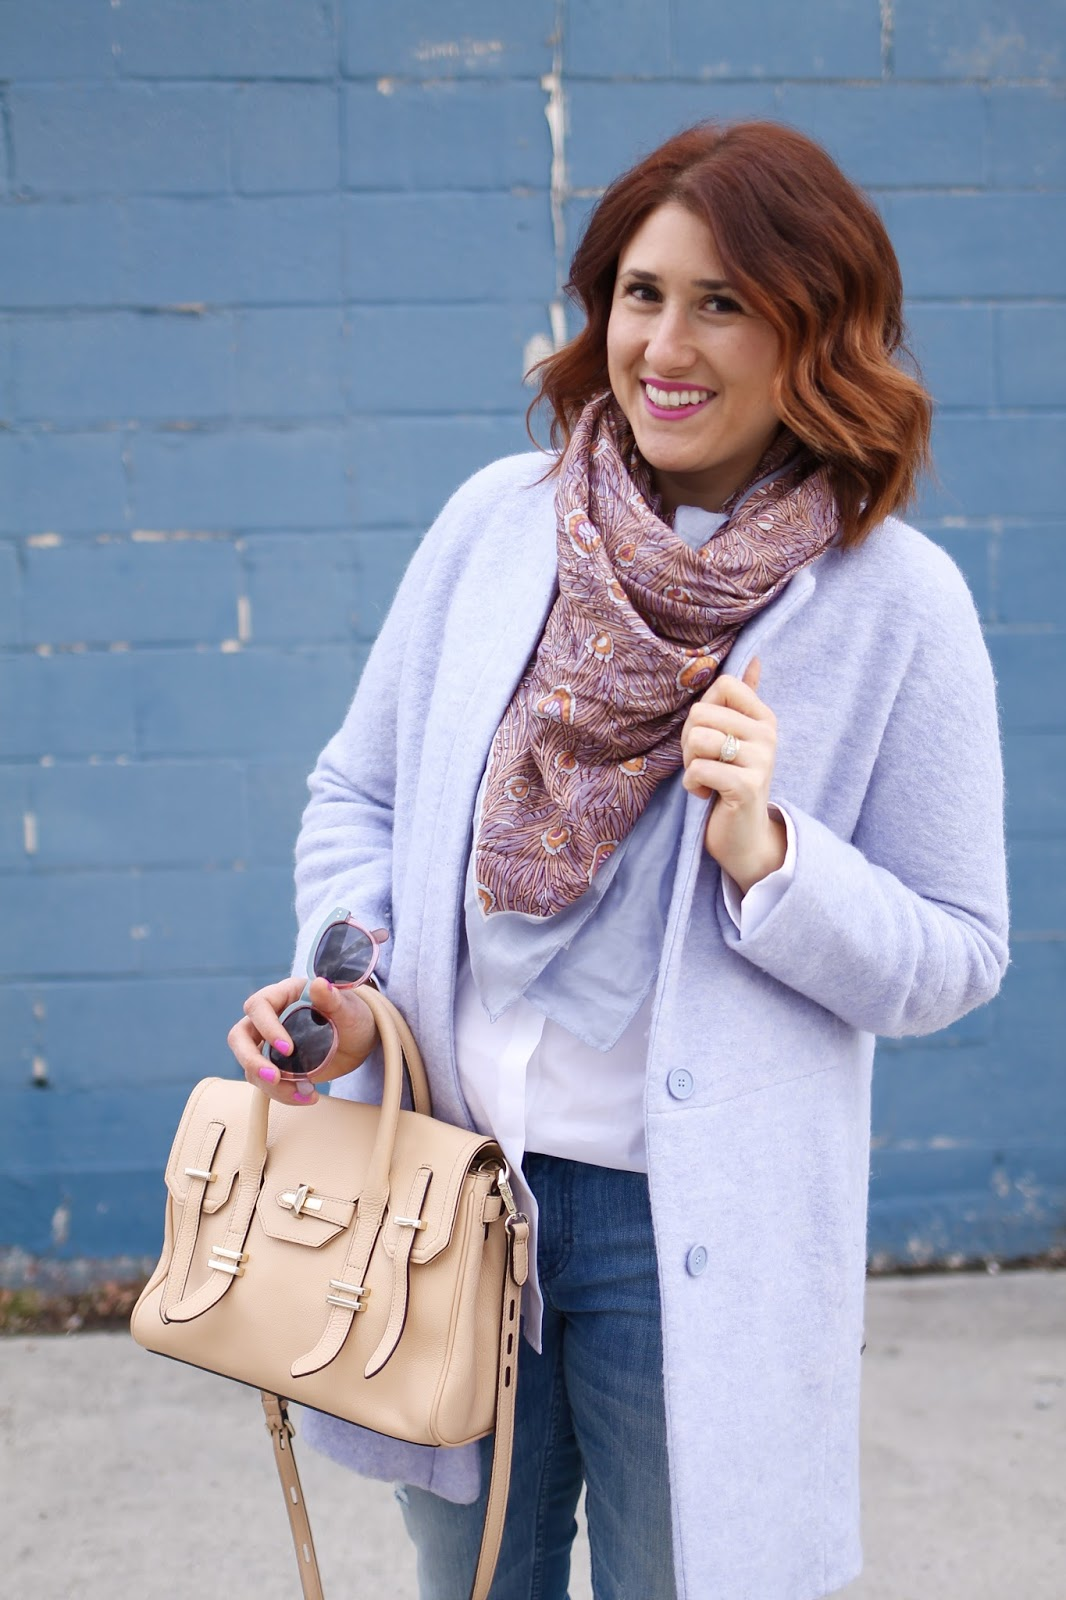 baby blue jacket, printed scarf, casual outfit, jules satchel, tan purse, leather purse, rebecca minkoff purse, red hairstyle, distressed jeans, blue heels, classic white button down shirt